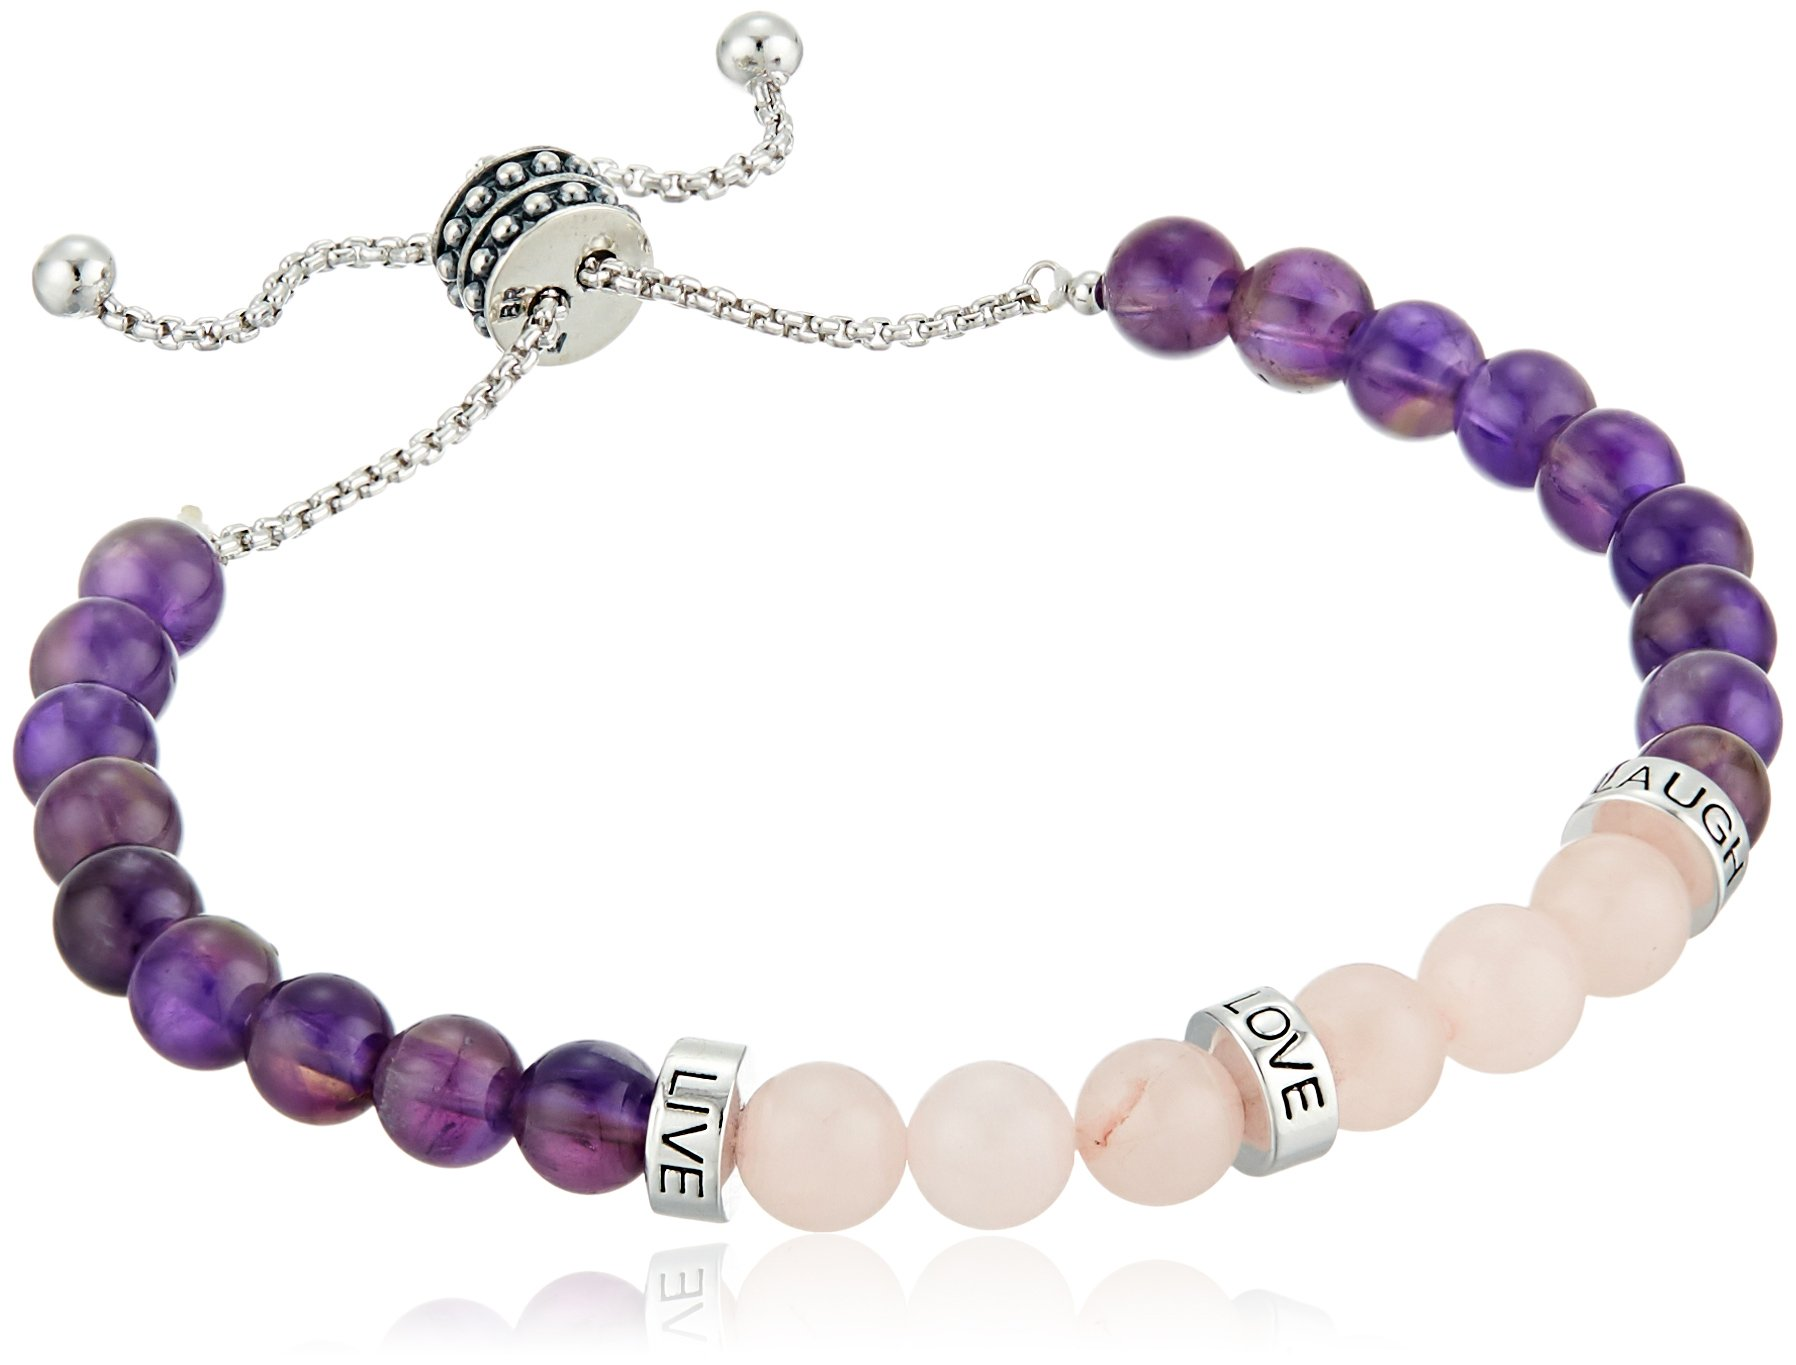 Fine Silver Plated Bronze Genuine Amethyst and Rose Quartz''Live, Love, Laugh'' Beaded Bolo Adjustable Bracelet, 9'' by Amazon Collection (Image #1)